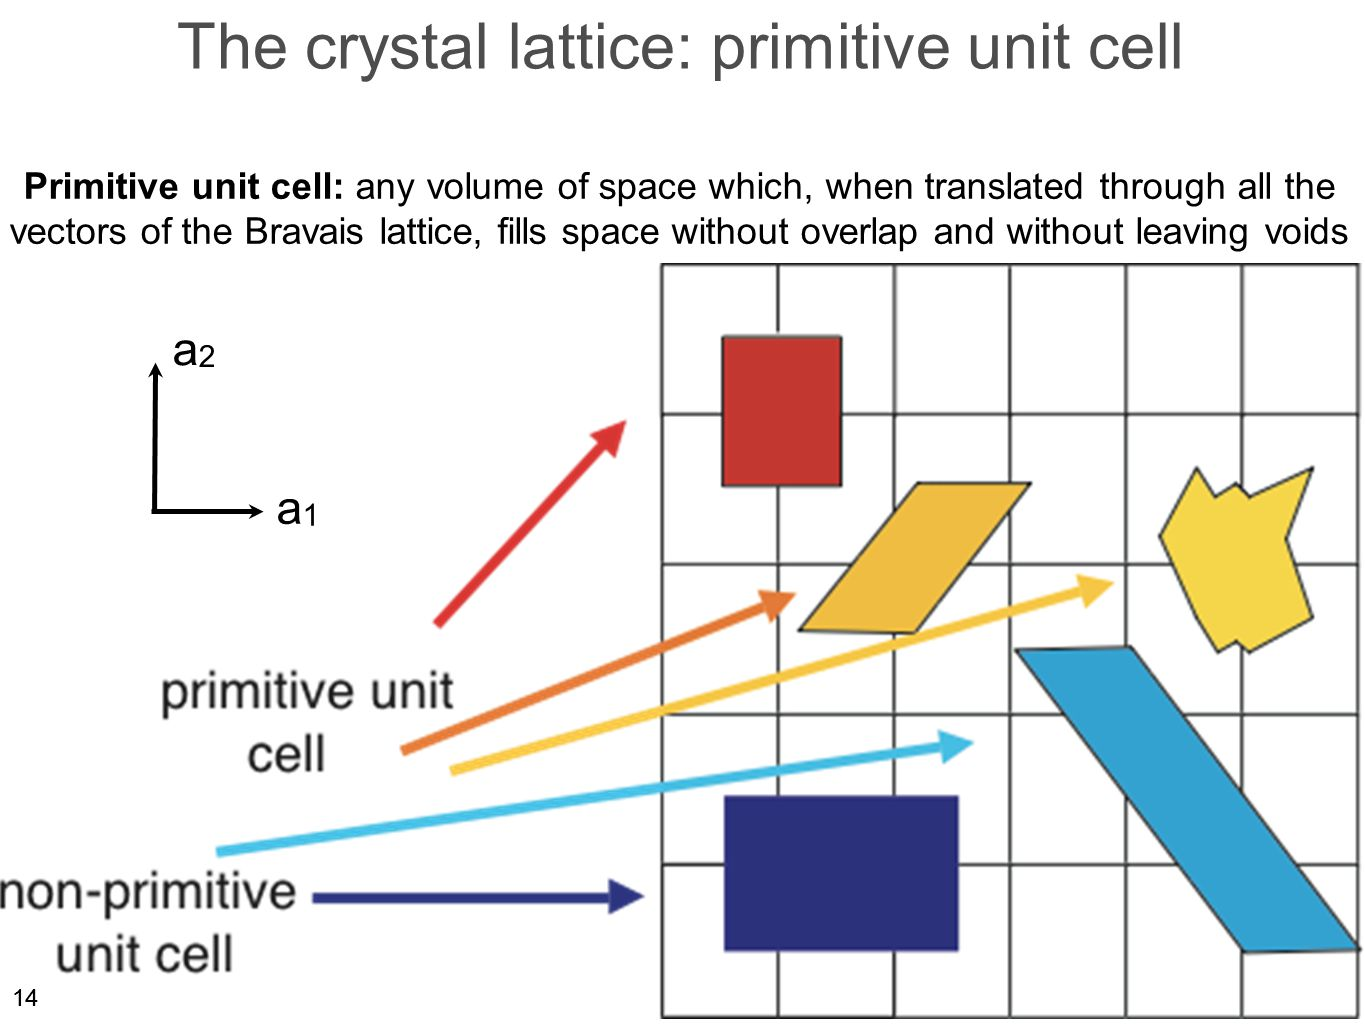 14 The crystal lattice: primitive unit cell Primitive unit cell: any volume of space which, when translated through all the vectors of the Bravais lattice, fills space without overlap and without leaving voids a1a1 a2a2 14